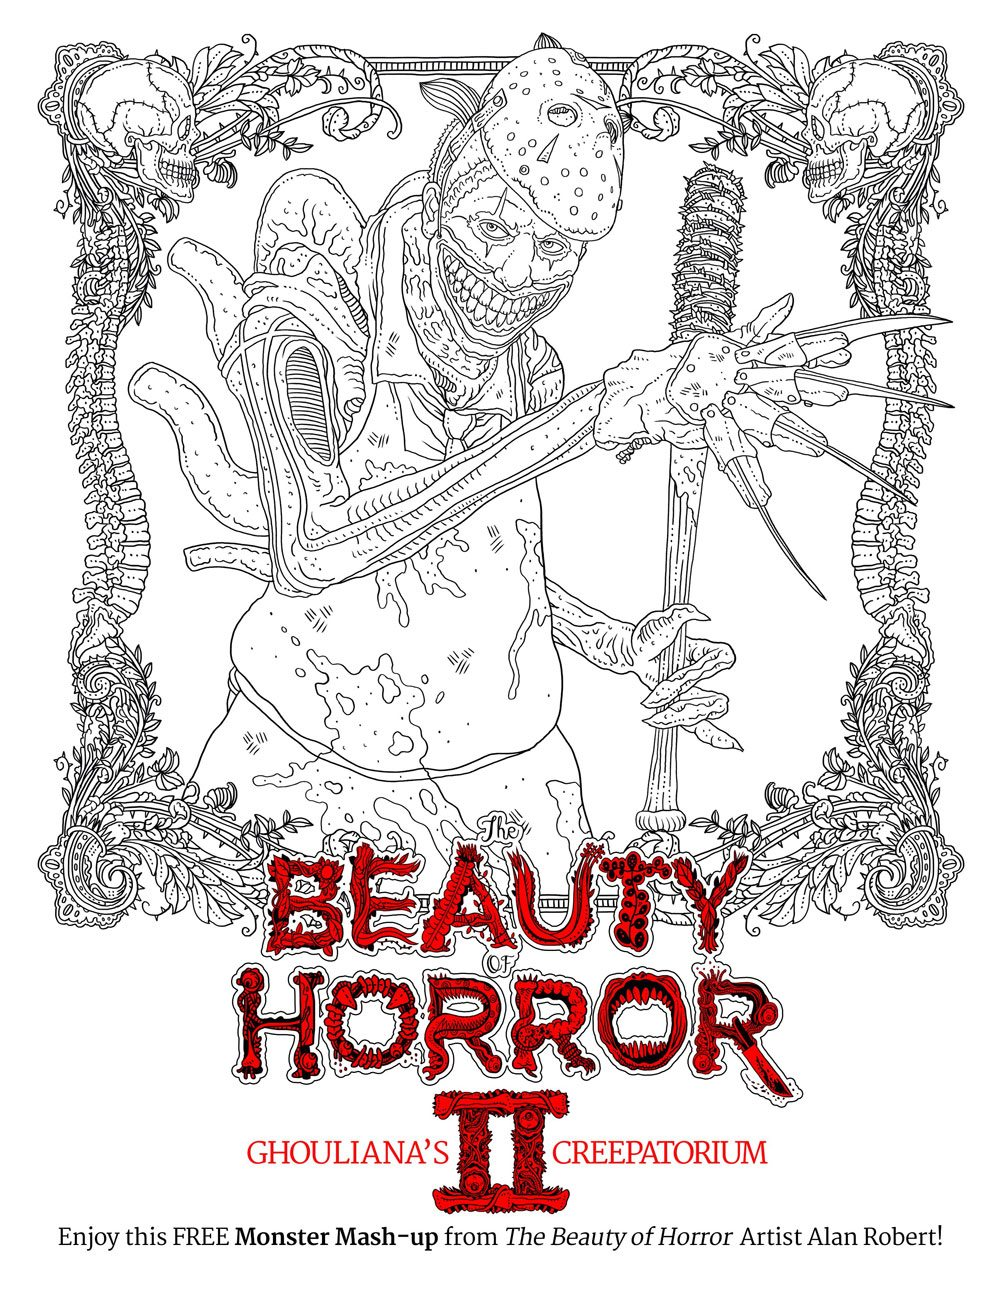 Idw Releases Two Free Monster Mash Up Coloring Pages From Where To Buy Horror Coloring Books